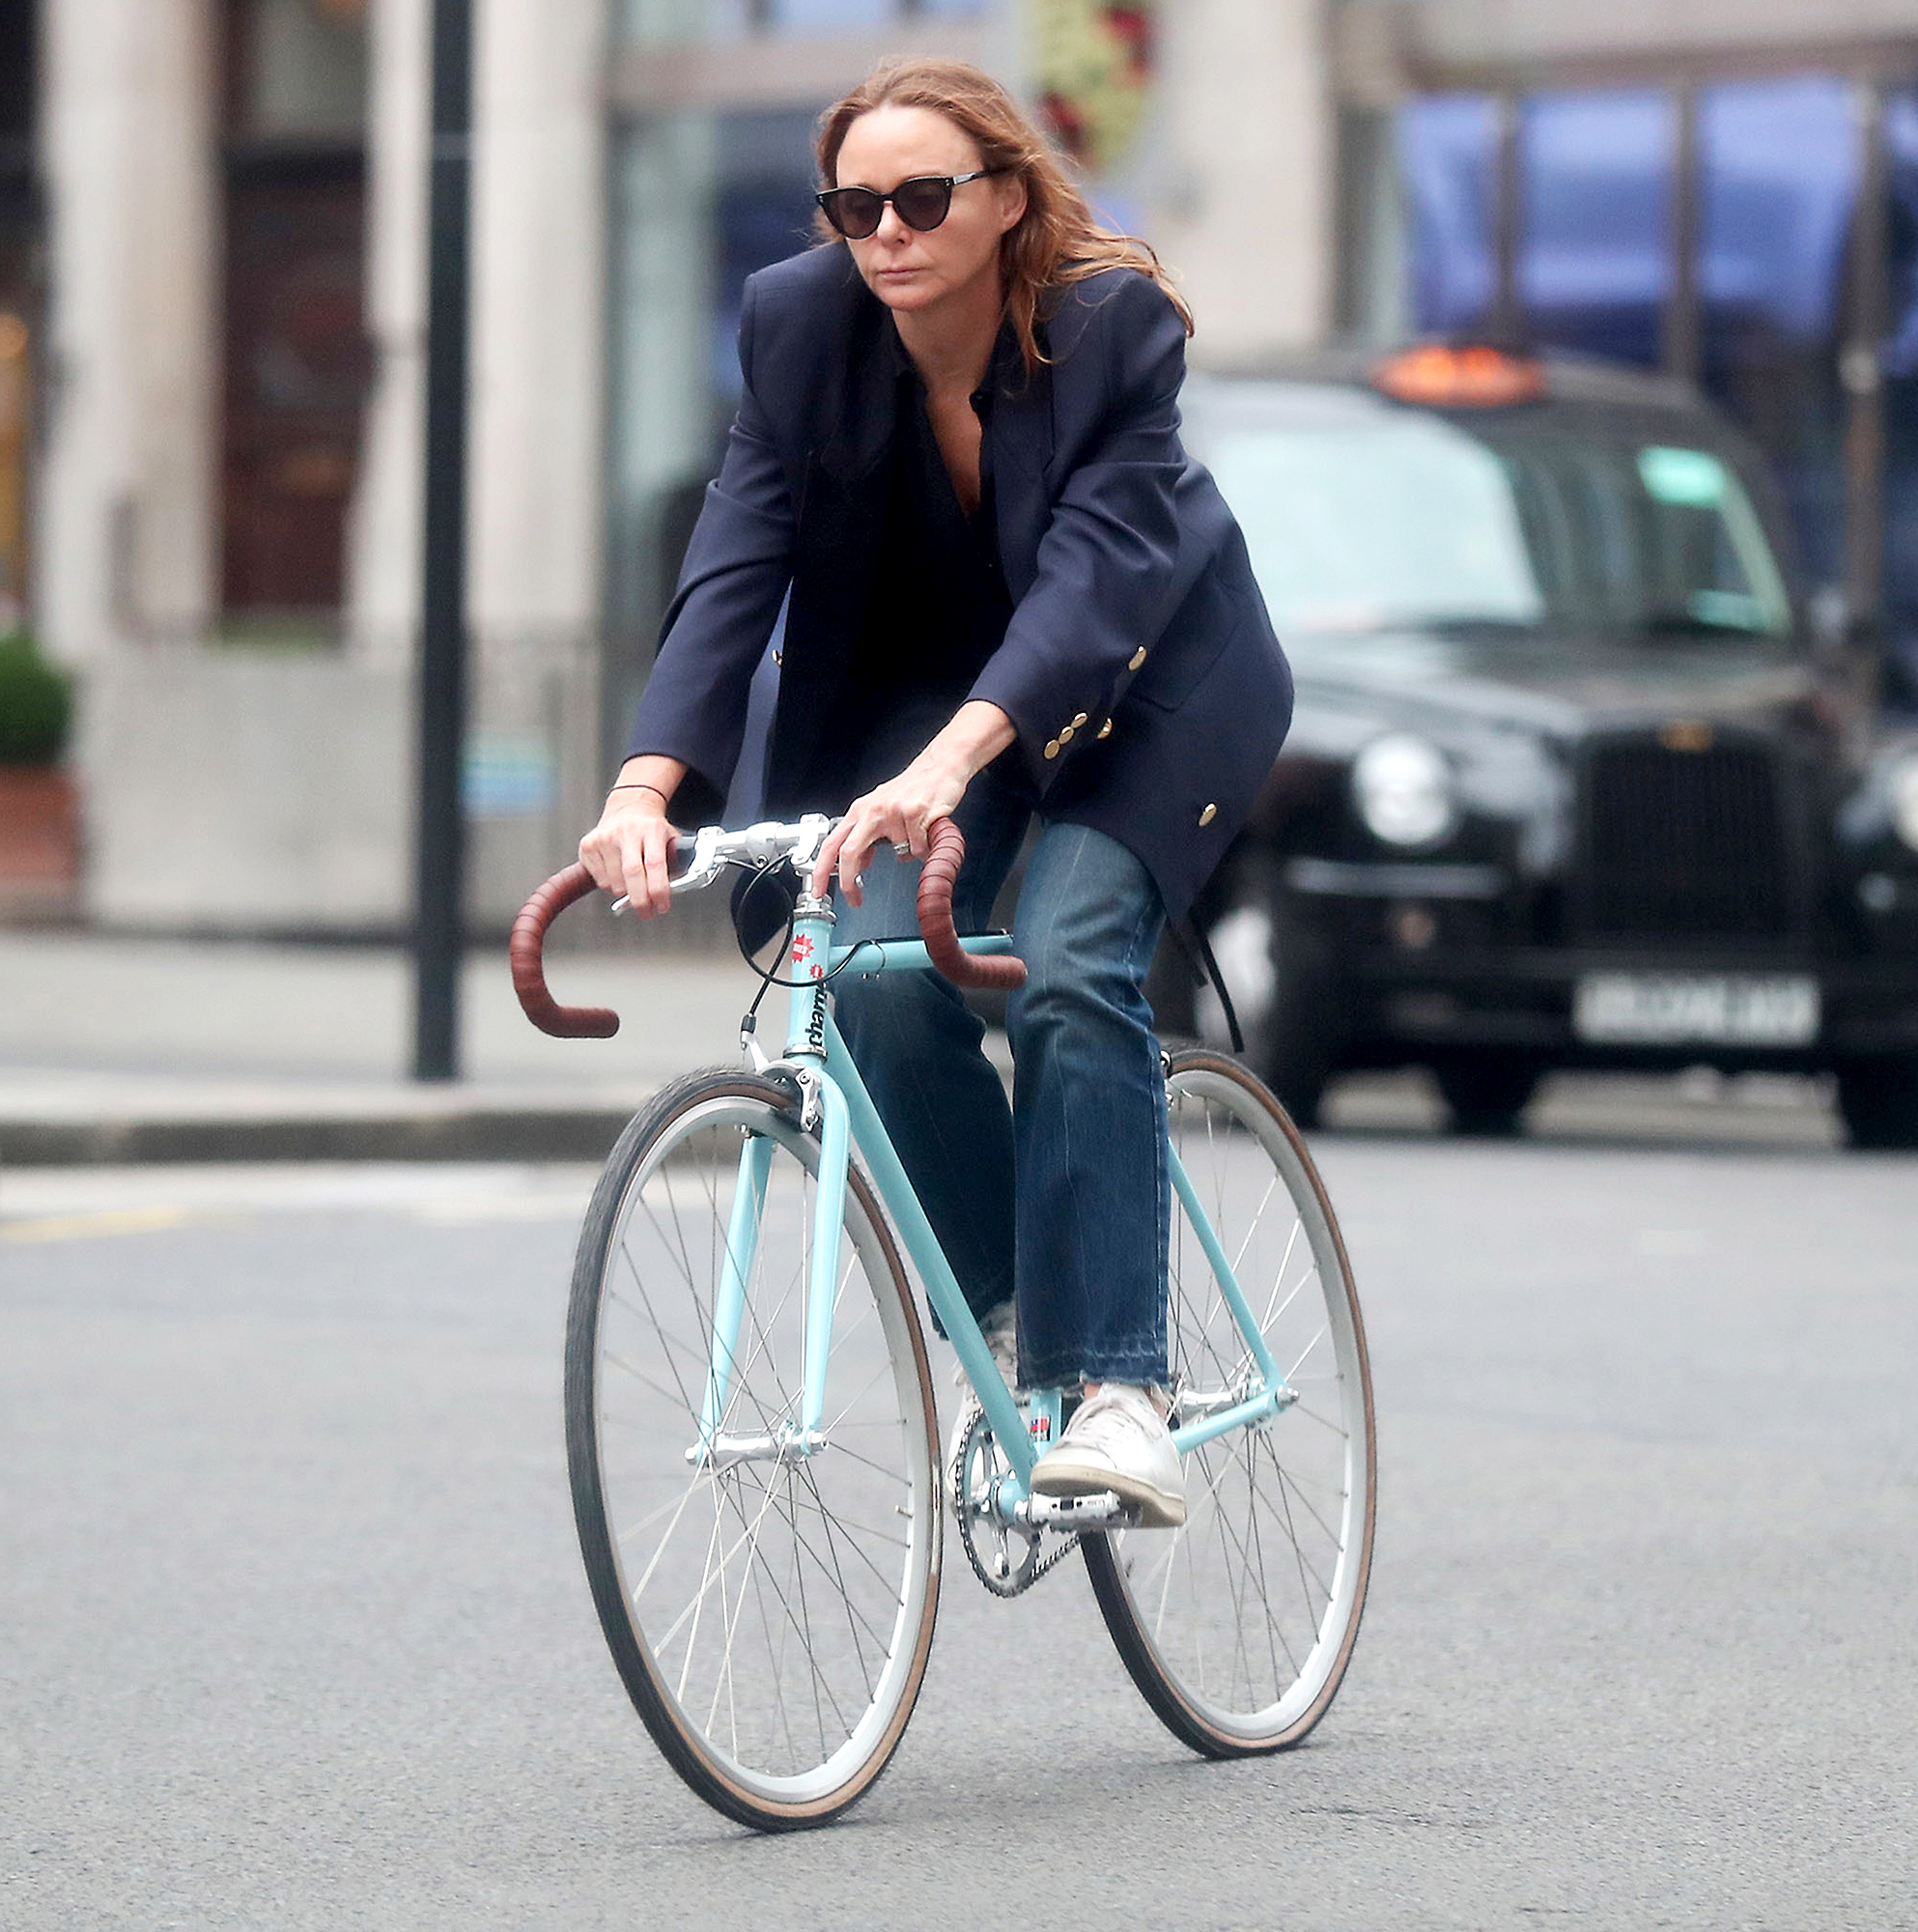 Stella-McCartney-biking - The fashion designer went for a chic ride in an oversized blazer and jeans in London on June 12, 2018.